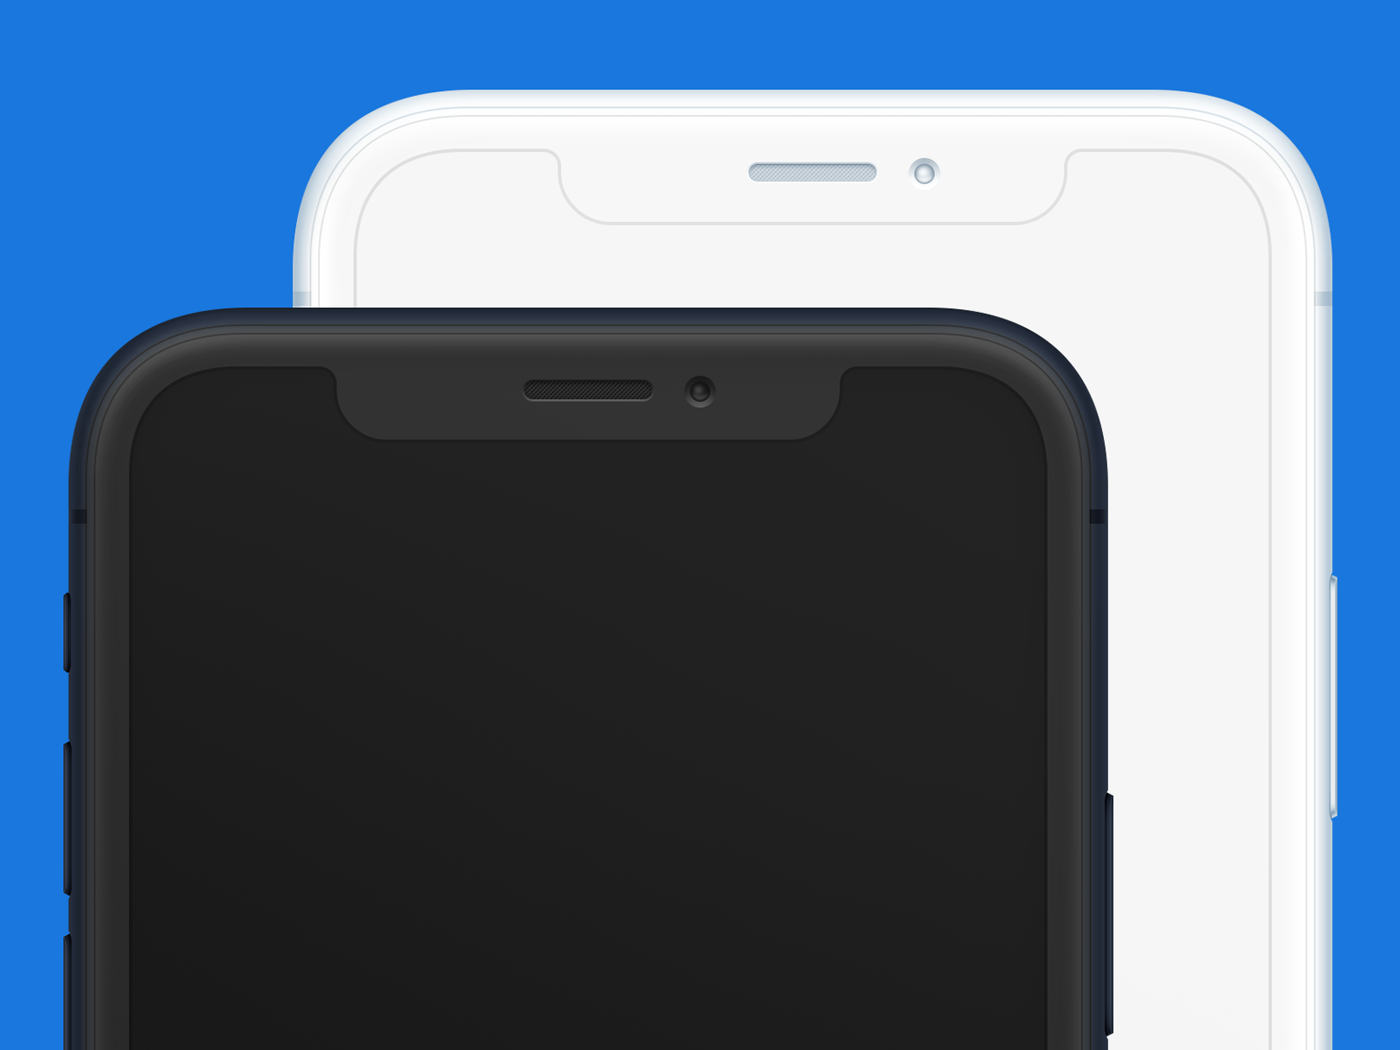 Iphone x clay frontal mockup psd sketch